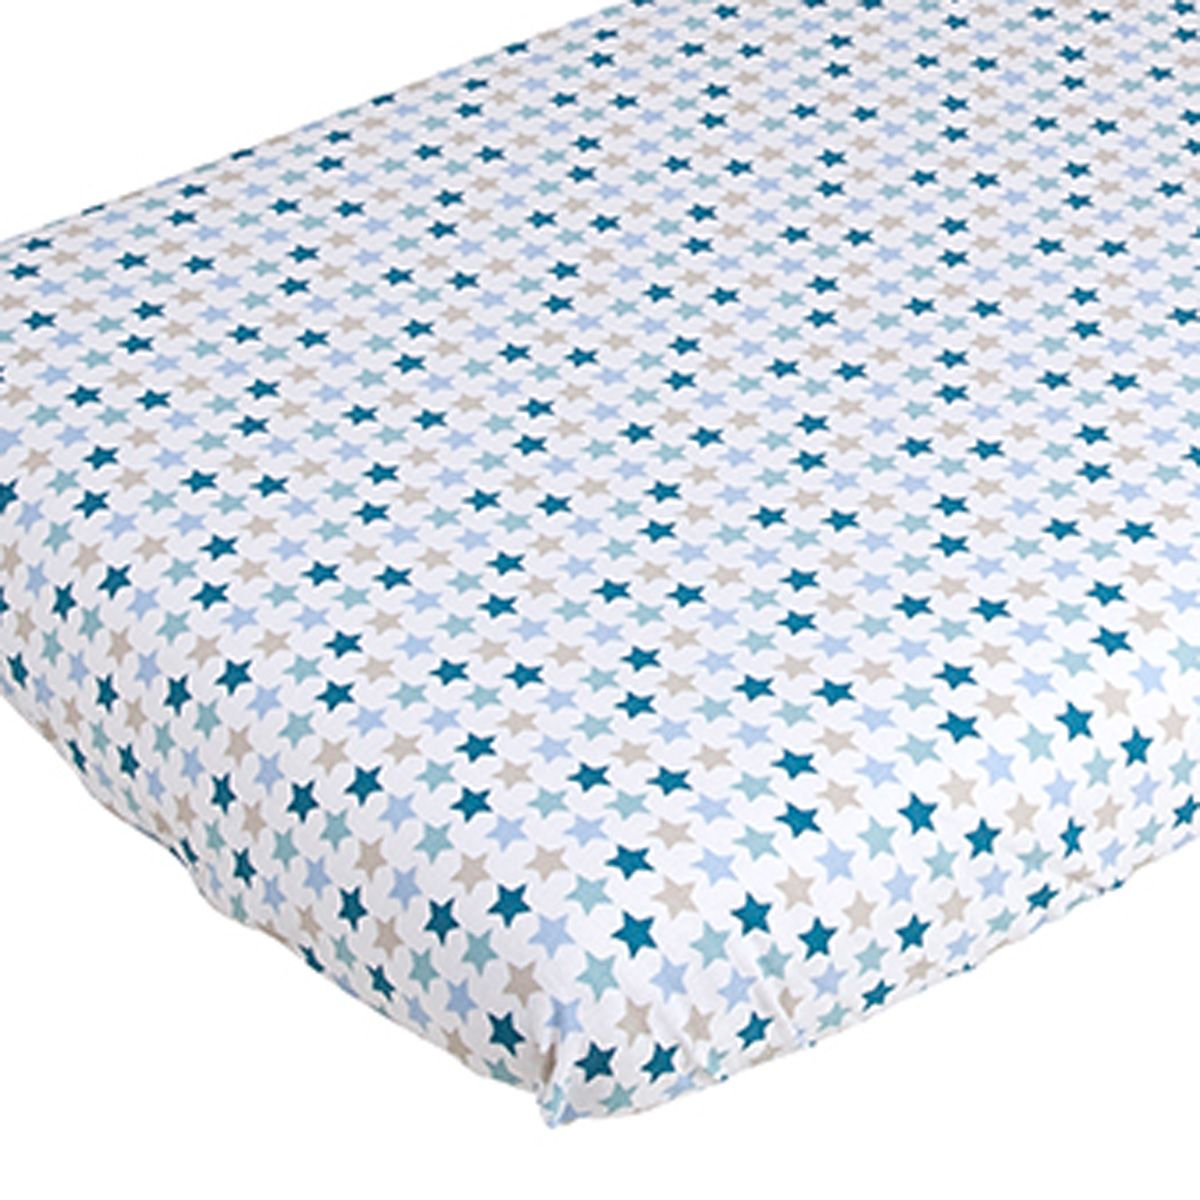 Kinderbettwäsche Mint Spannbettlaken Babybett 120x60 Cm Mixed Stars Mint Von Little Dutch